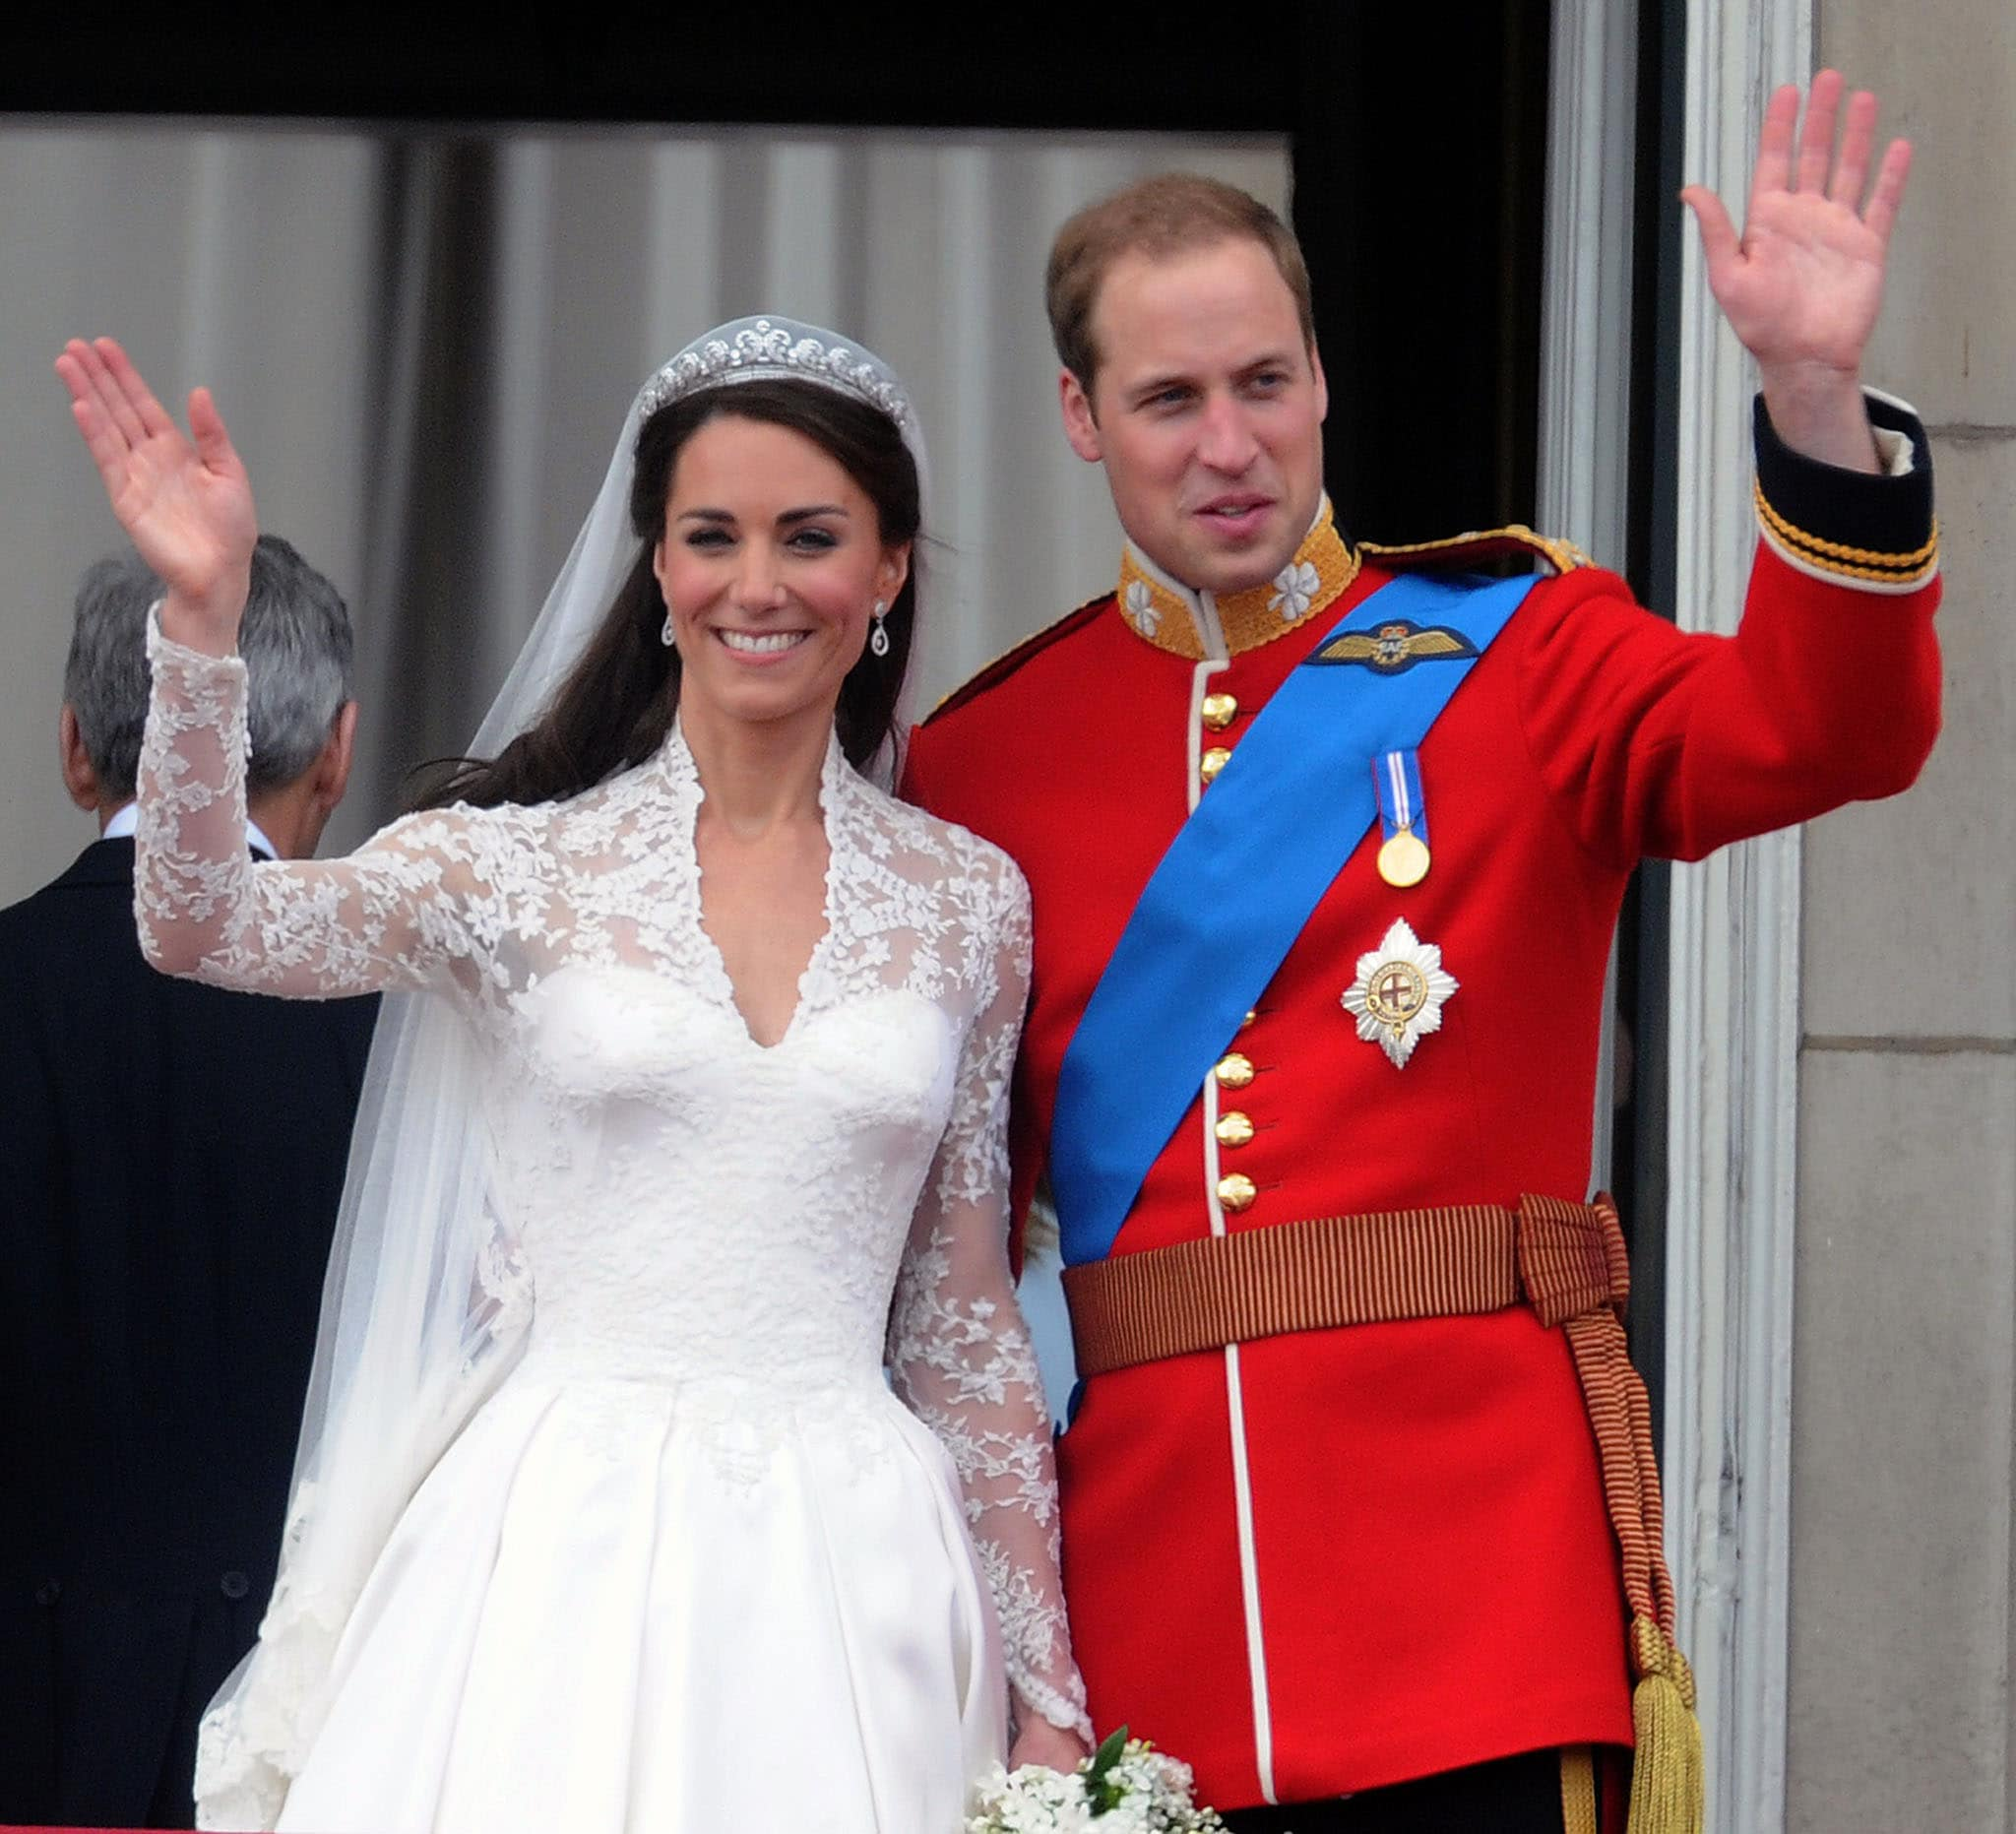 Duchess of Cambridge Kate Middleton wears a white laced wedding gown designed by Sarah Burton for Alexander McQueen in April 2011